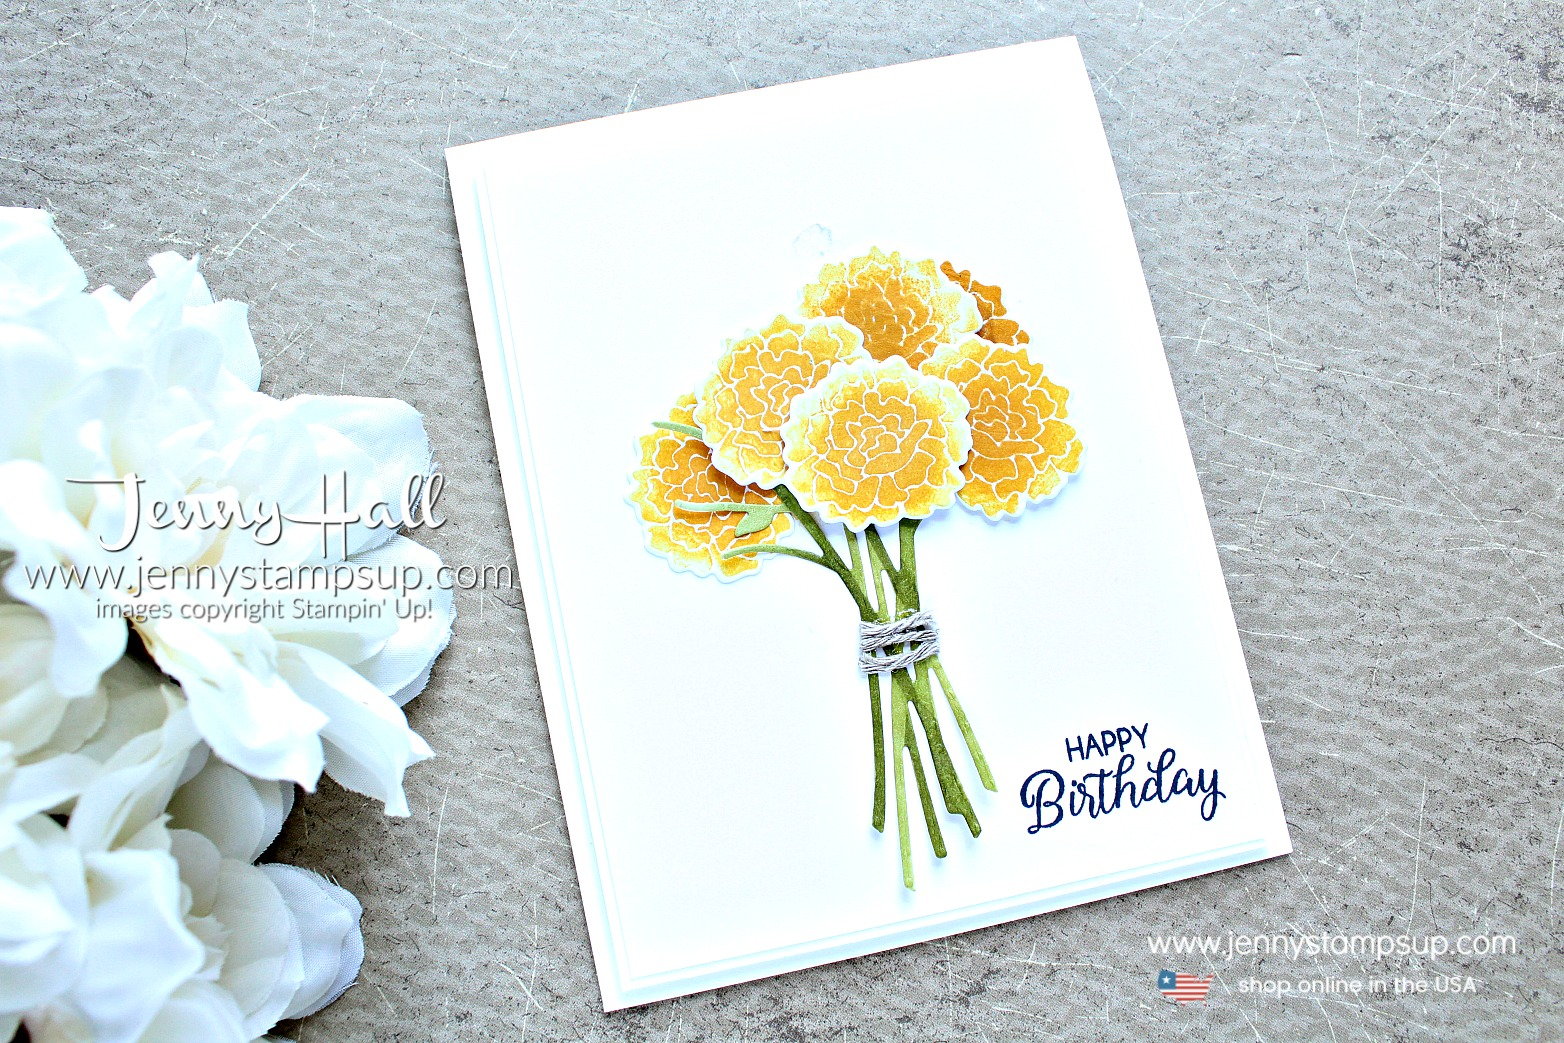 June Stampin Dreams Blog Hop card created by Jenny Hall at www.jennyhalldesign.com for #cardmaking #scrapbooking #watercolorpainting #crafts #diy #papercrafts #stampinup #stamparatus #coloring #hobby #maker #create #videotutorial #beautifulbouquet #bouquetbuilderframelits #jennyhall #jennyhalldesign #jennystampsup #cascard #cleanandsimplecard